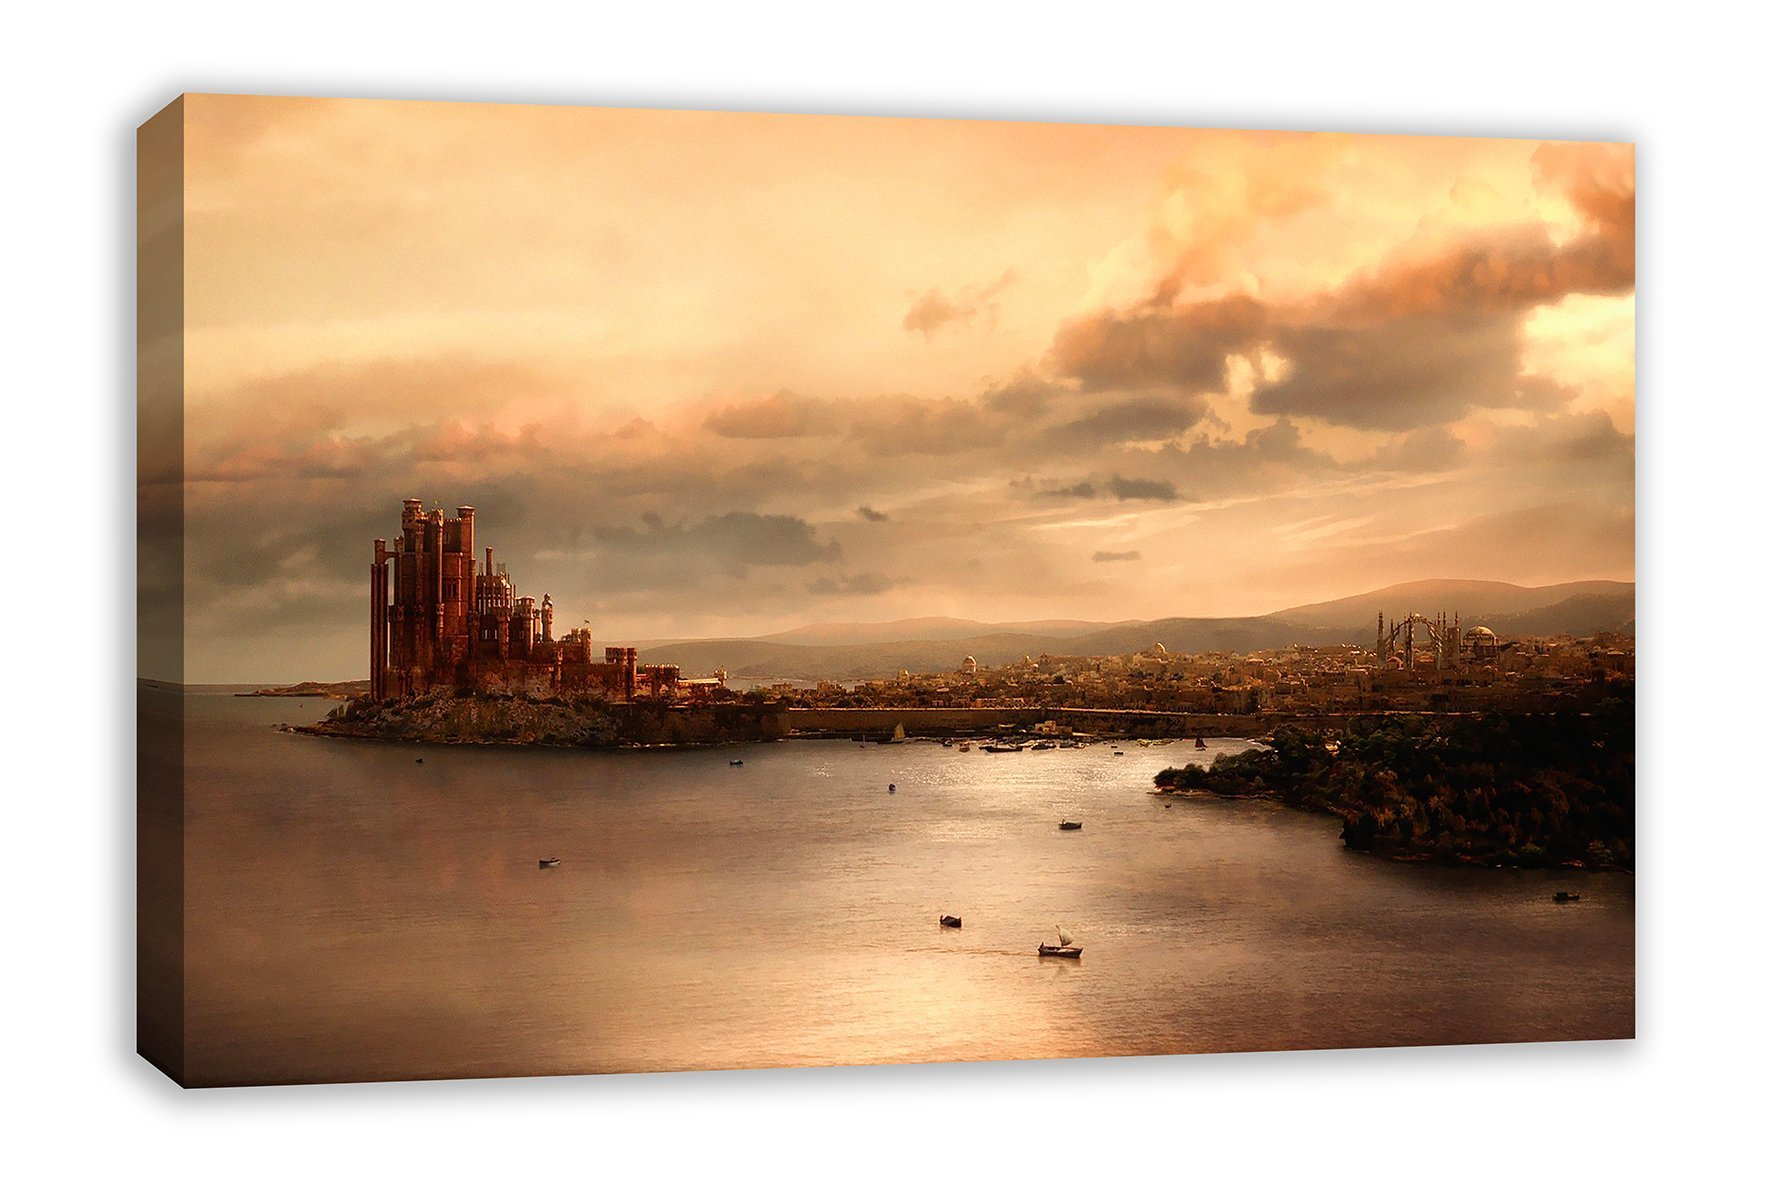 "GAME OF THRONES KINGS LANDING CANVAS WALL ART (44"" X 26"")"